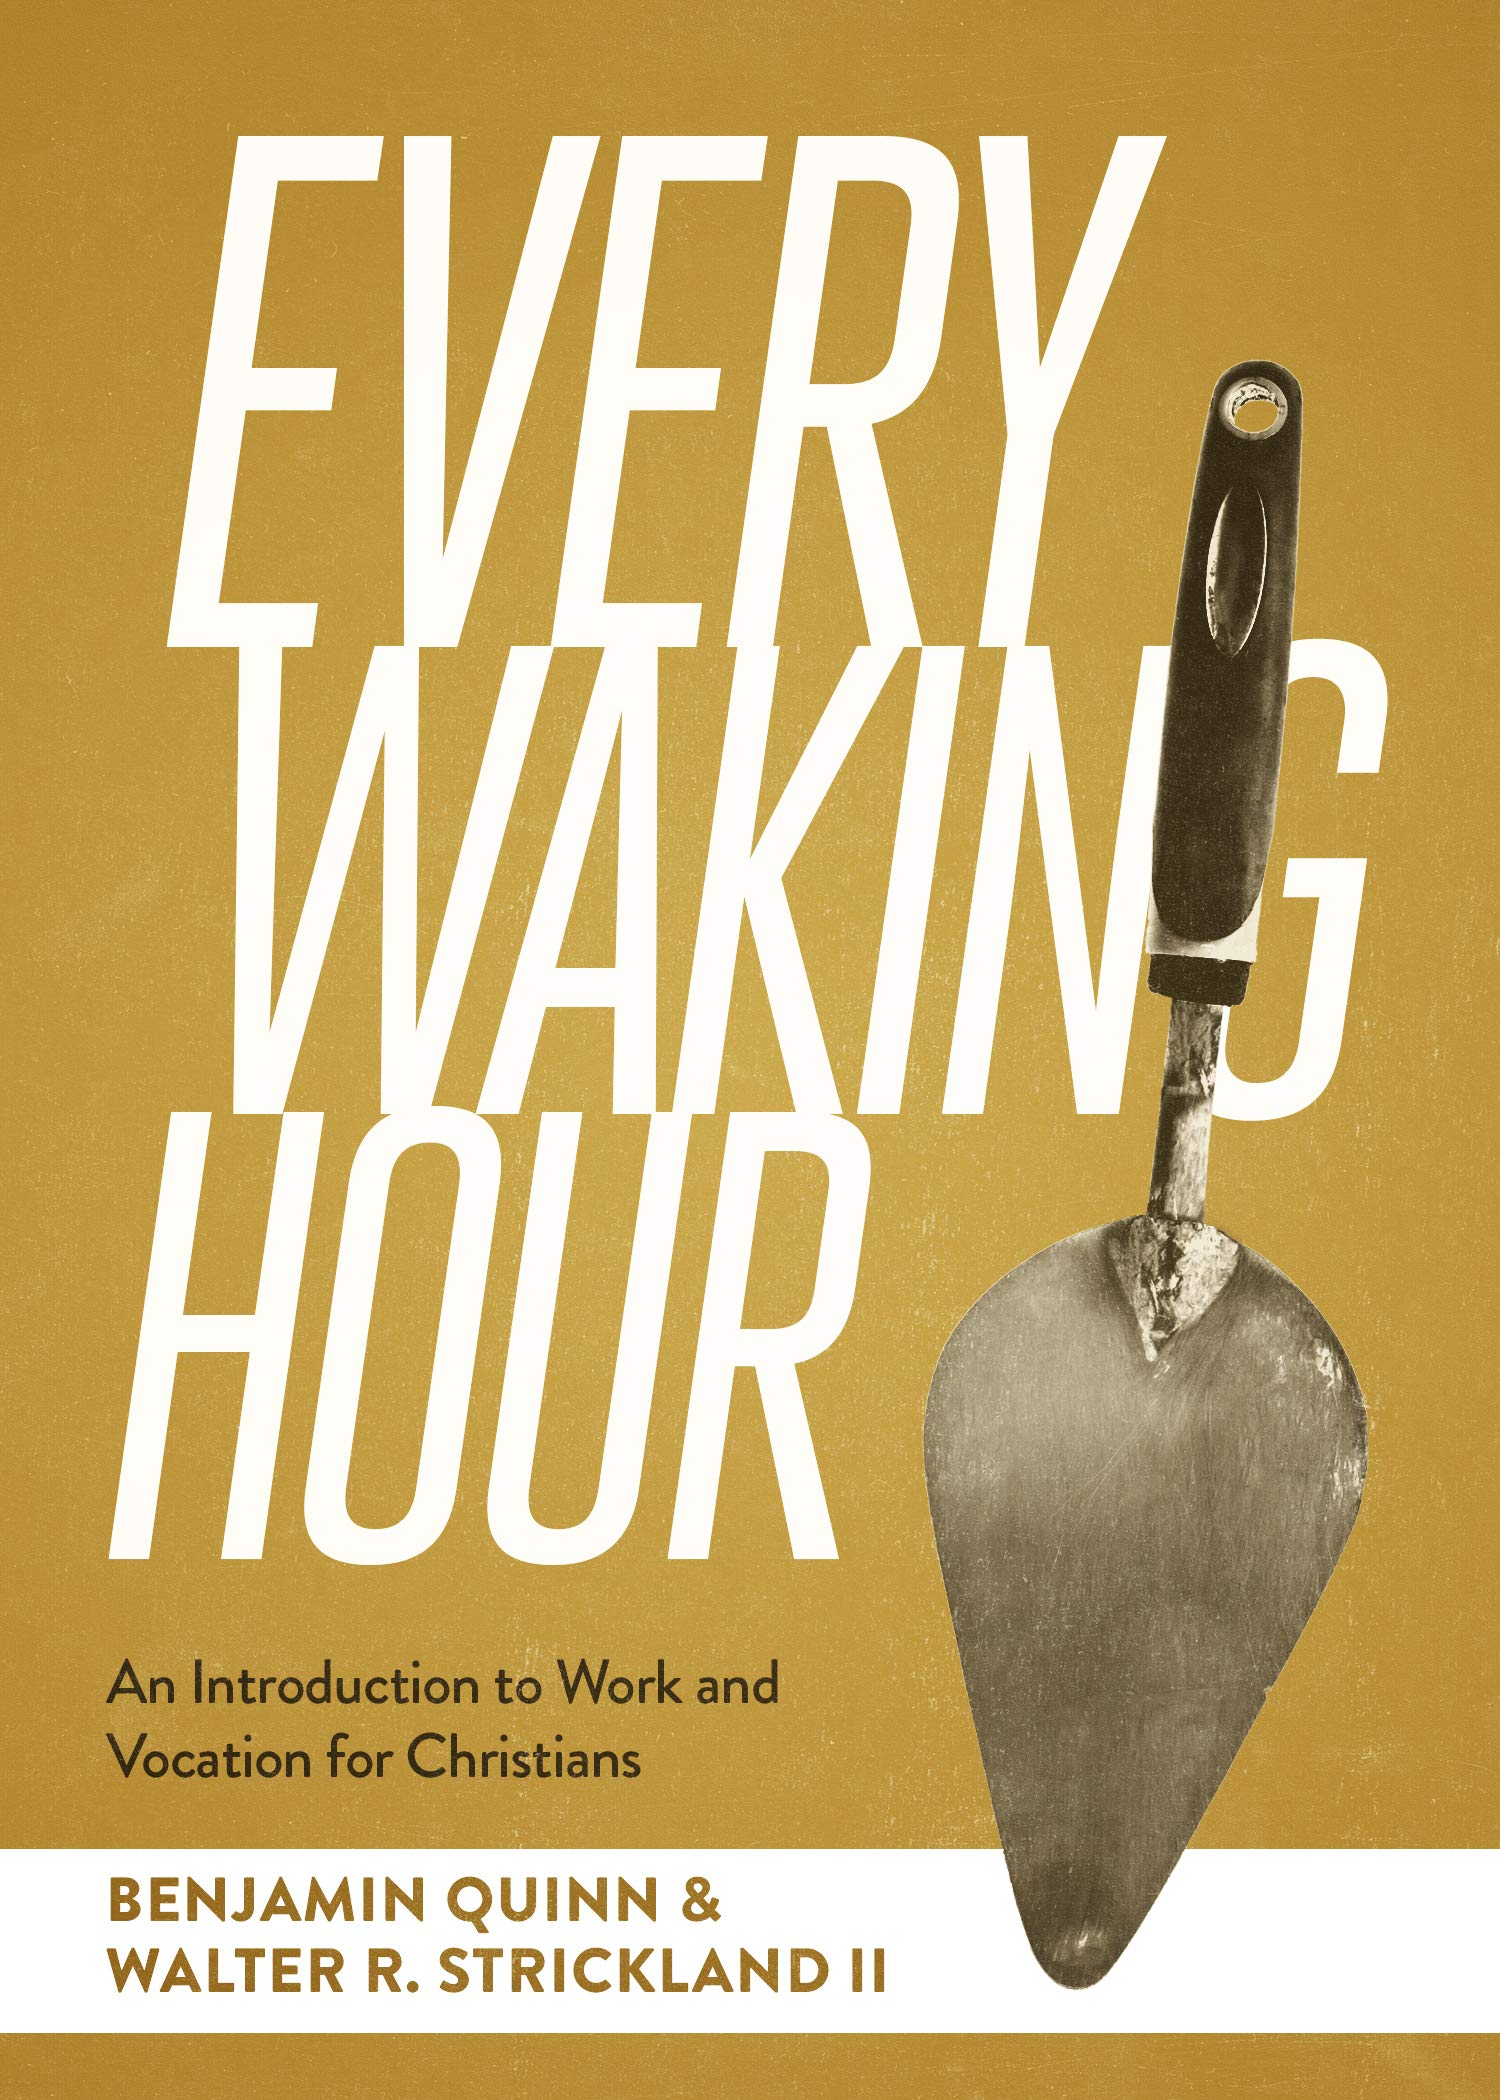 Every Waking Hour: An Introduction to Work and Vocation for